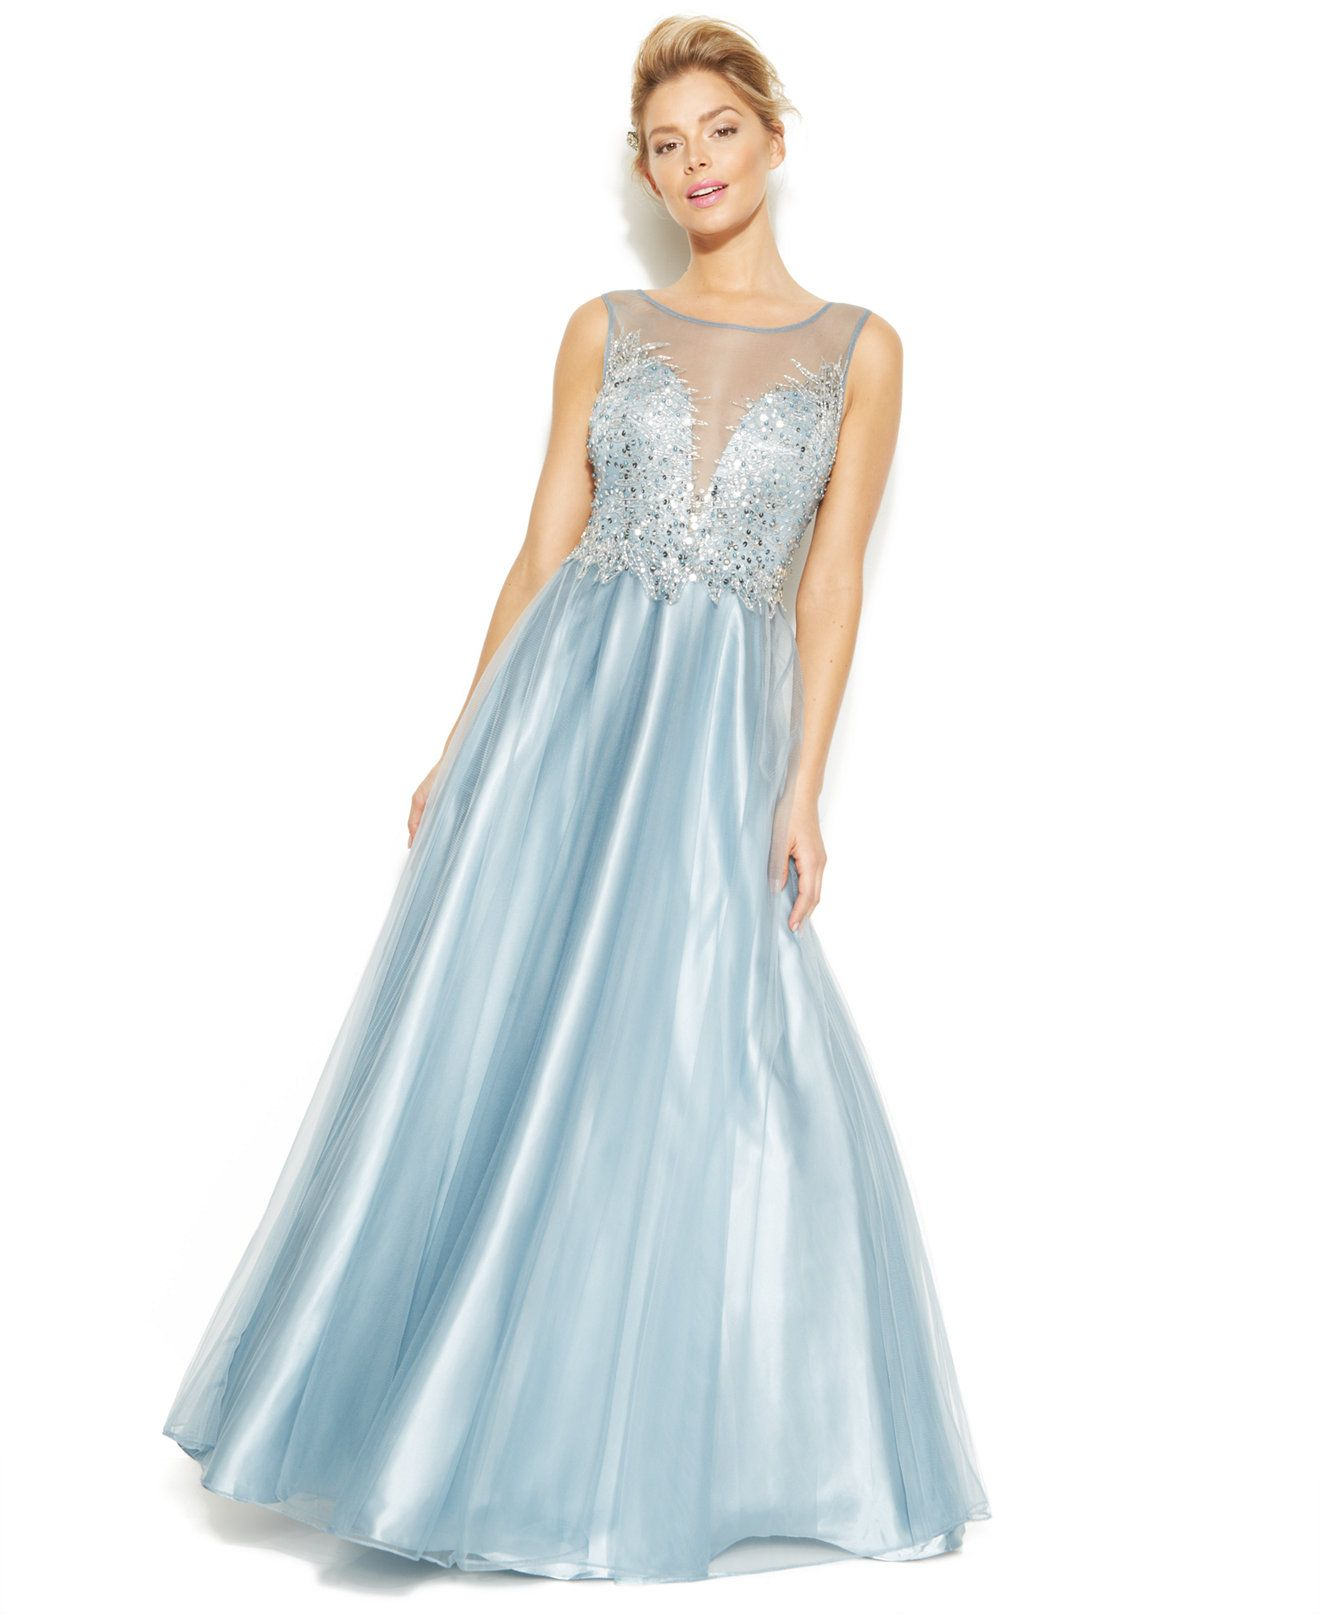 Betsy u adam illusion embellished sweetheart gown prom prom